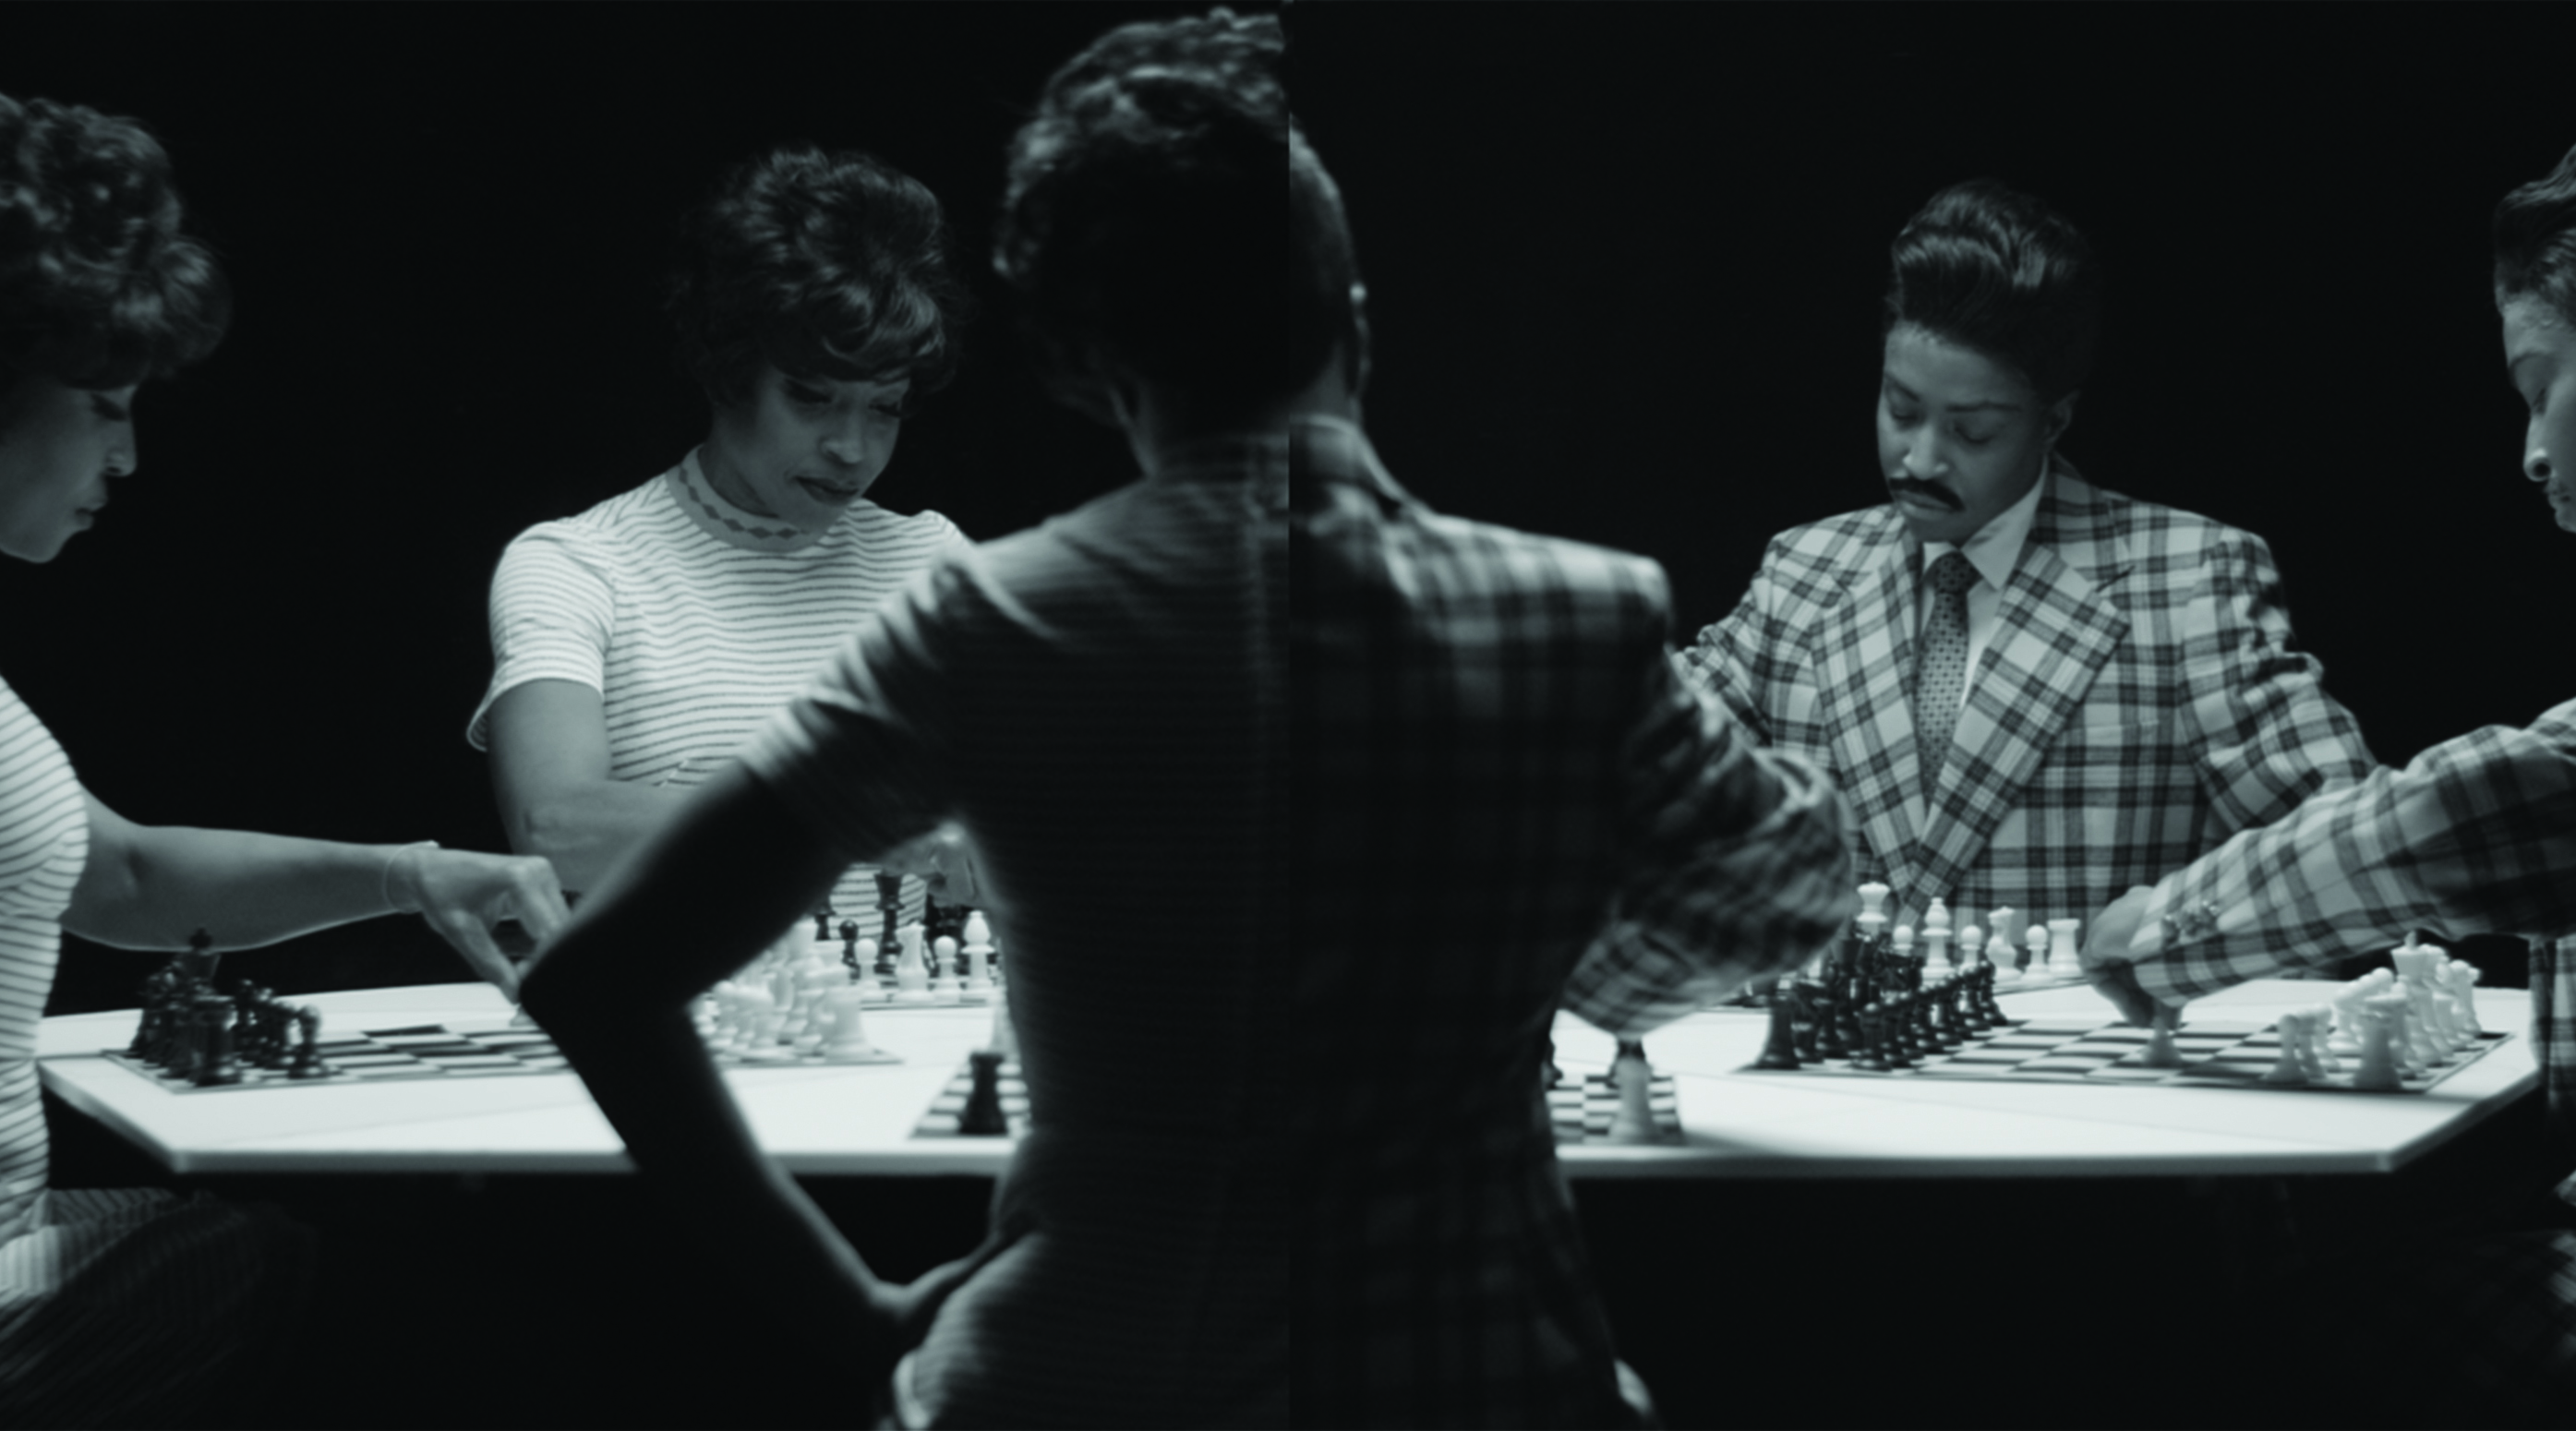 Lorna Simpson, Chess (still), 2012, HD video, black-and-white 3-channel video installation, 10 min 19 sec loop Courtesy Salon 94 and the artist